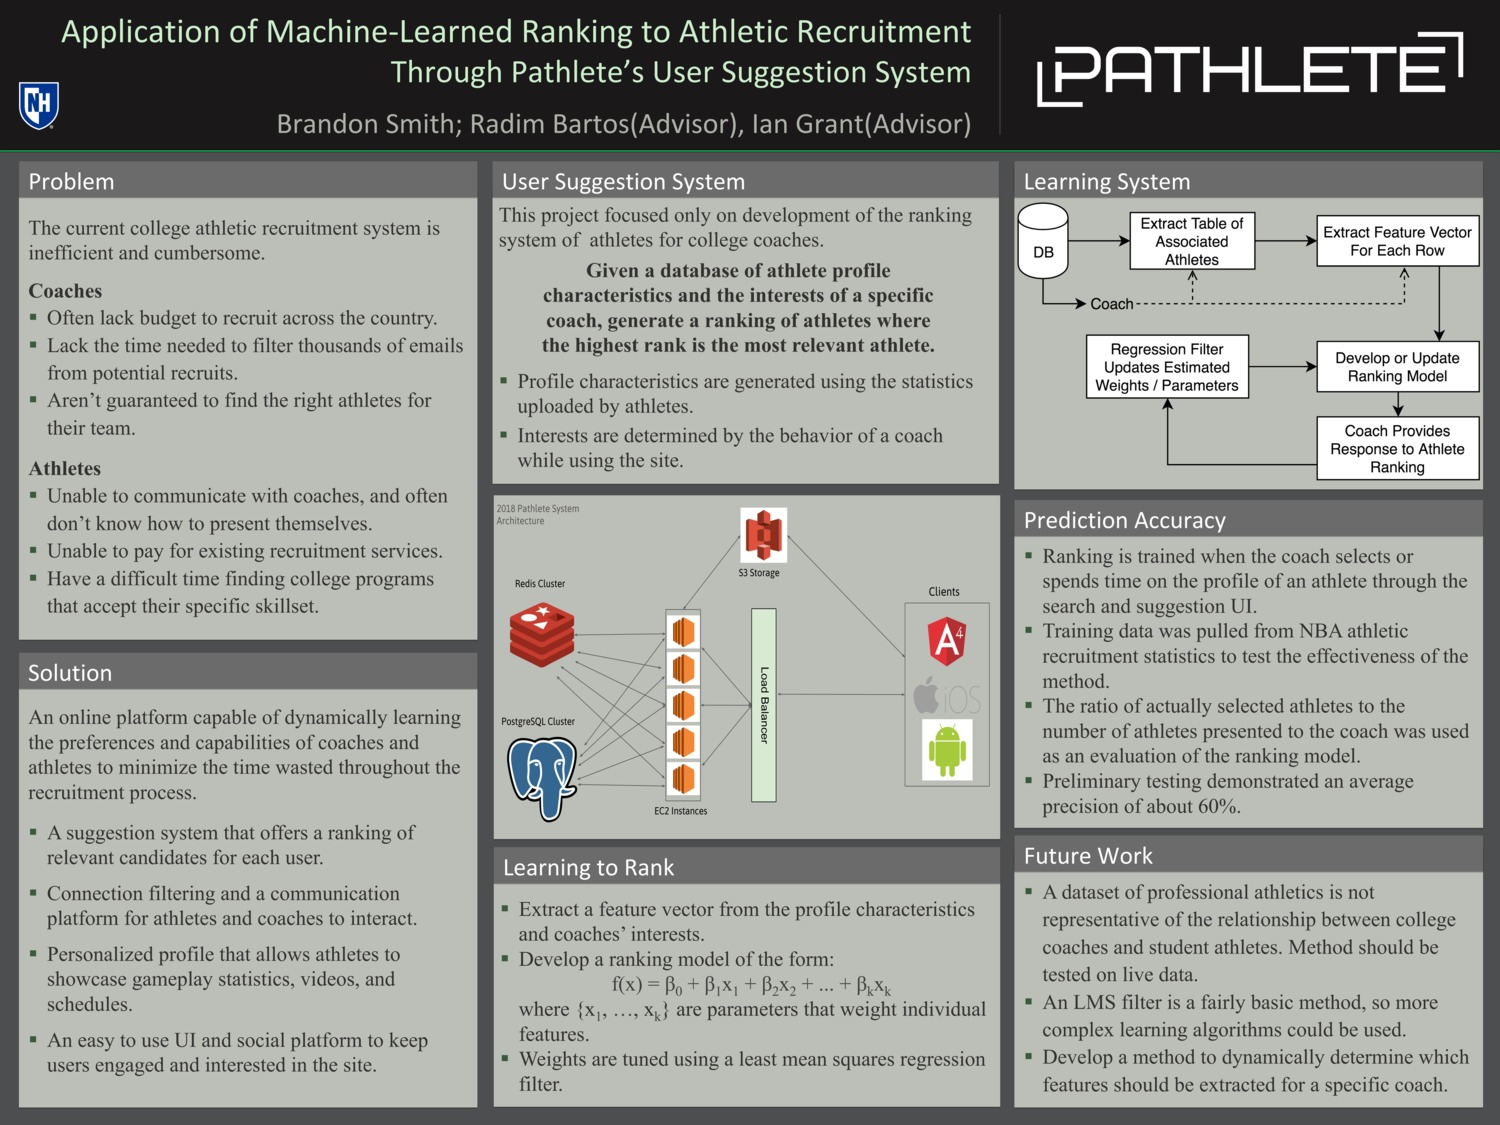 Application Of Machine-Learned Ranking To Athletic Recruitment Through Pathlete's User Suggestion System by bas12